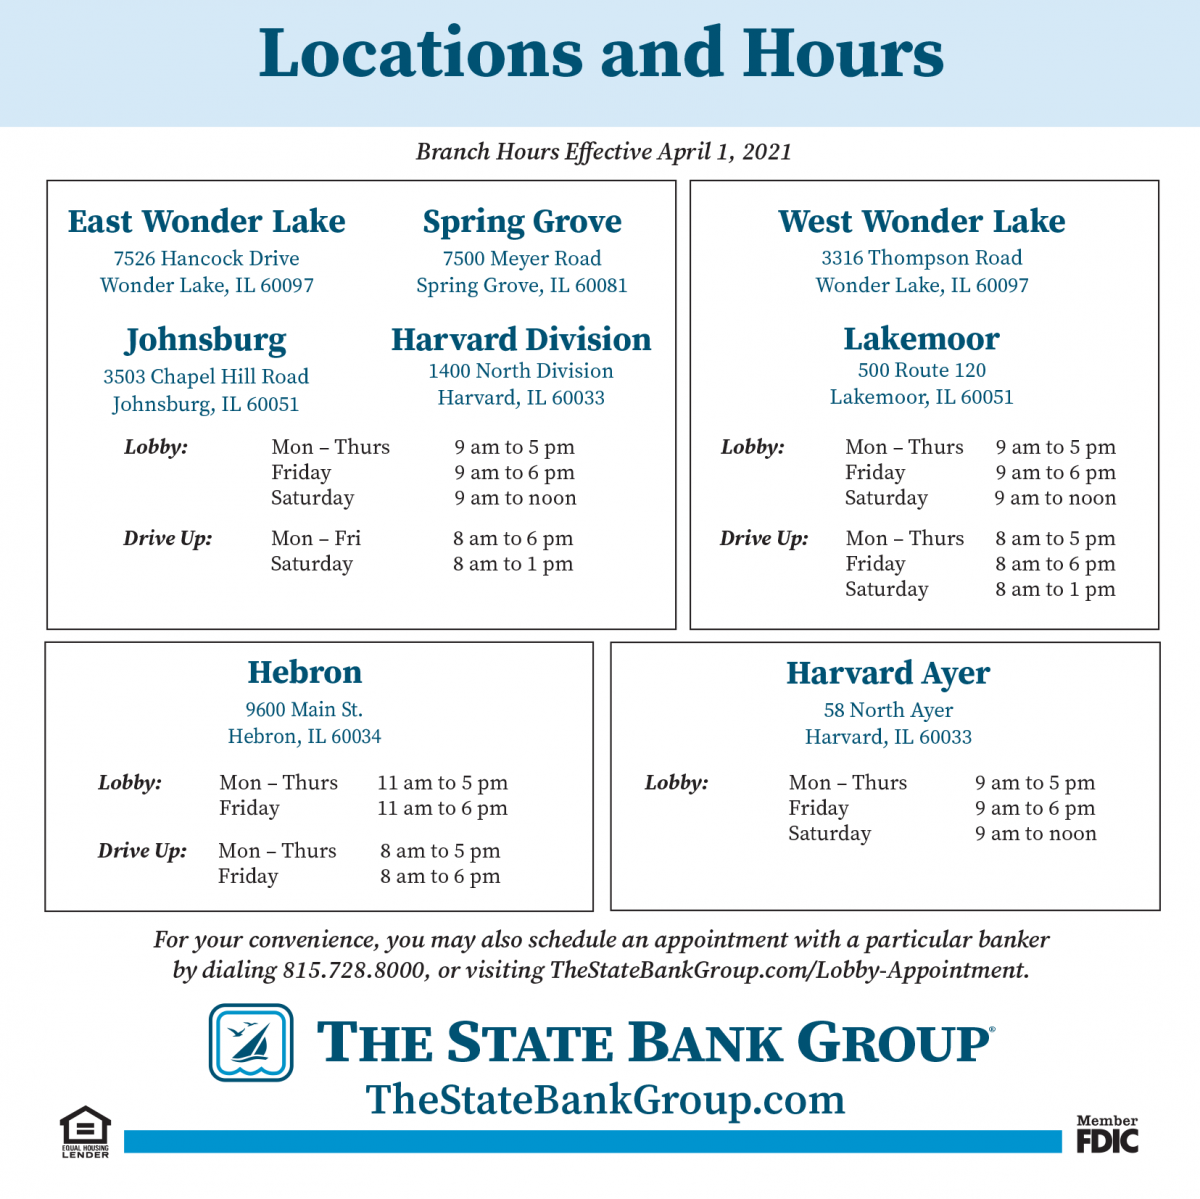 new hours effective April 1st 2021